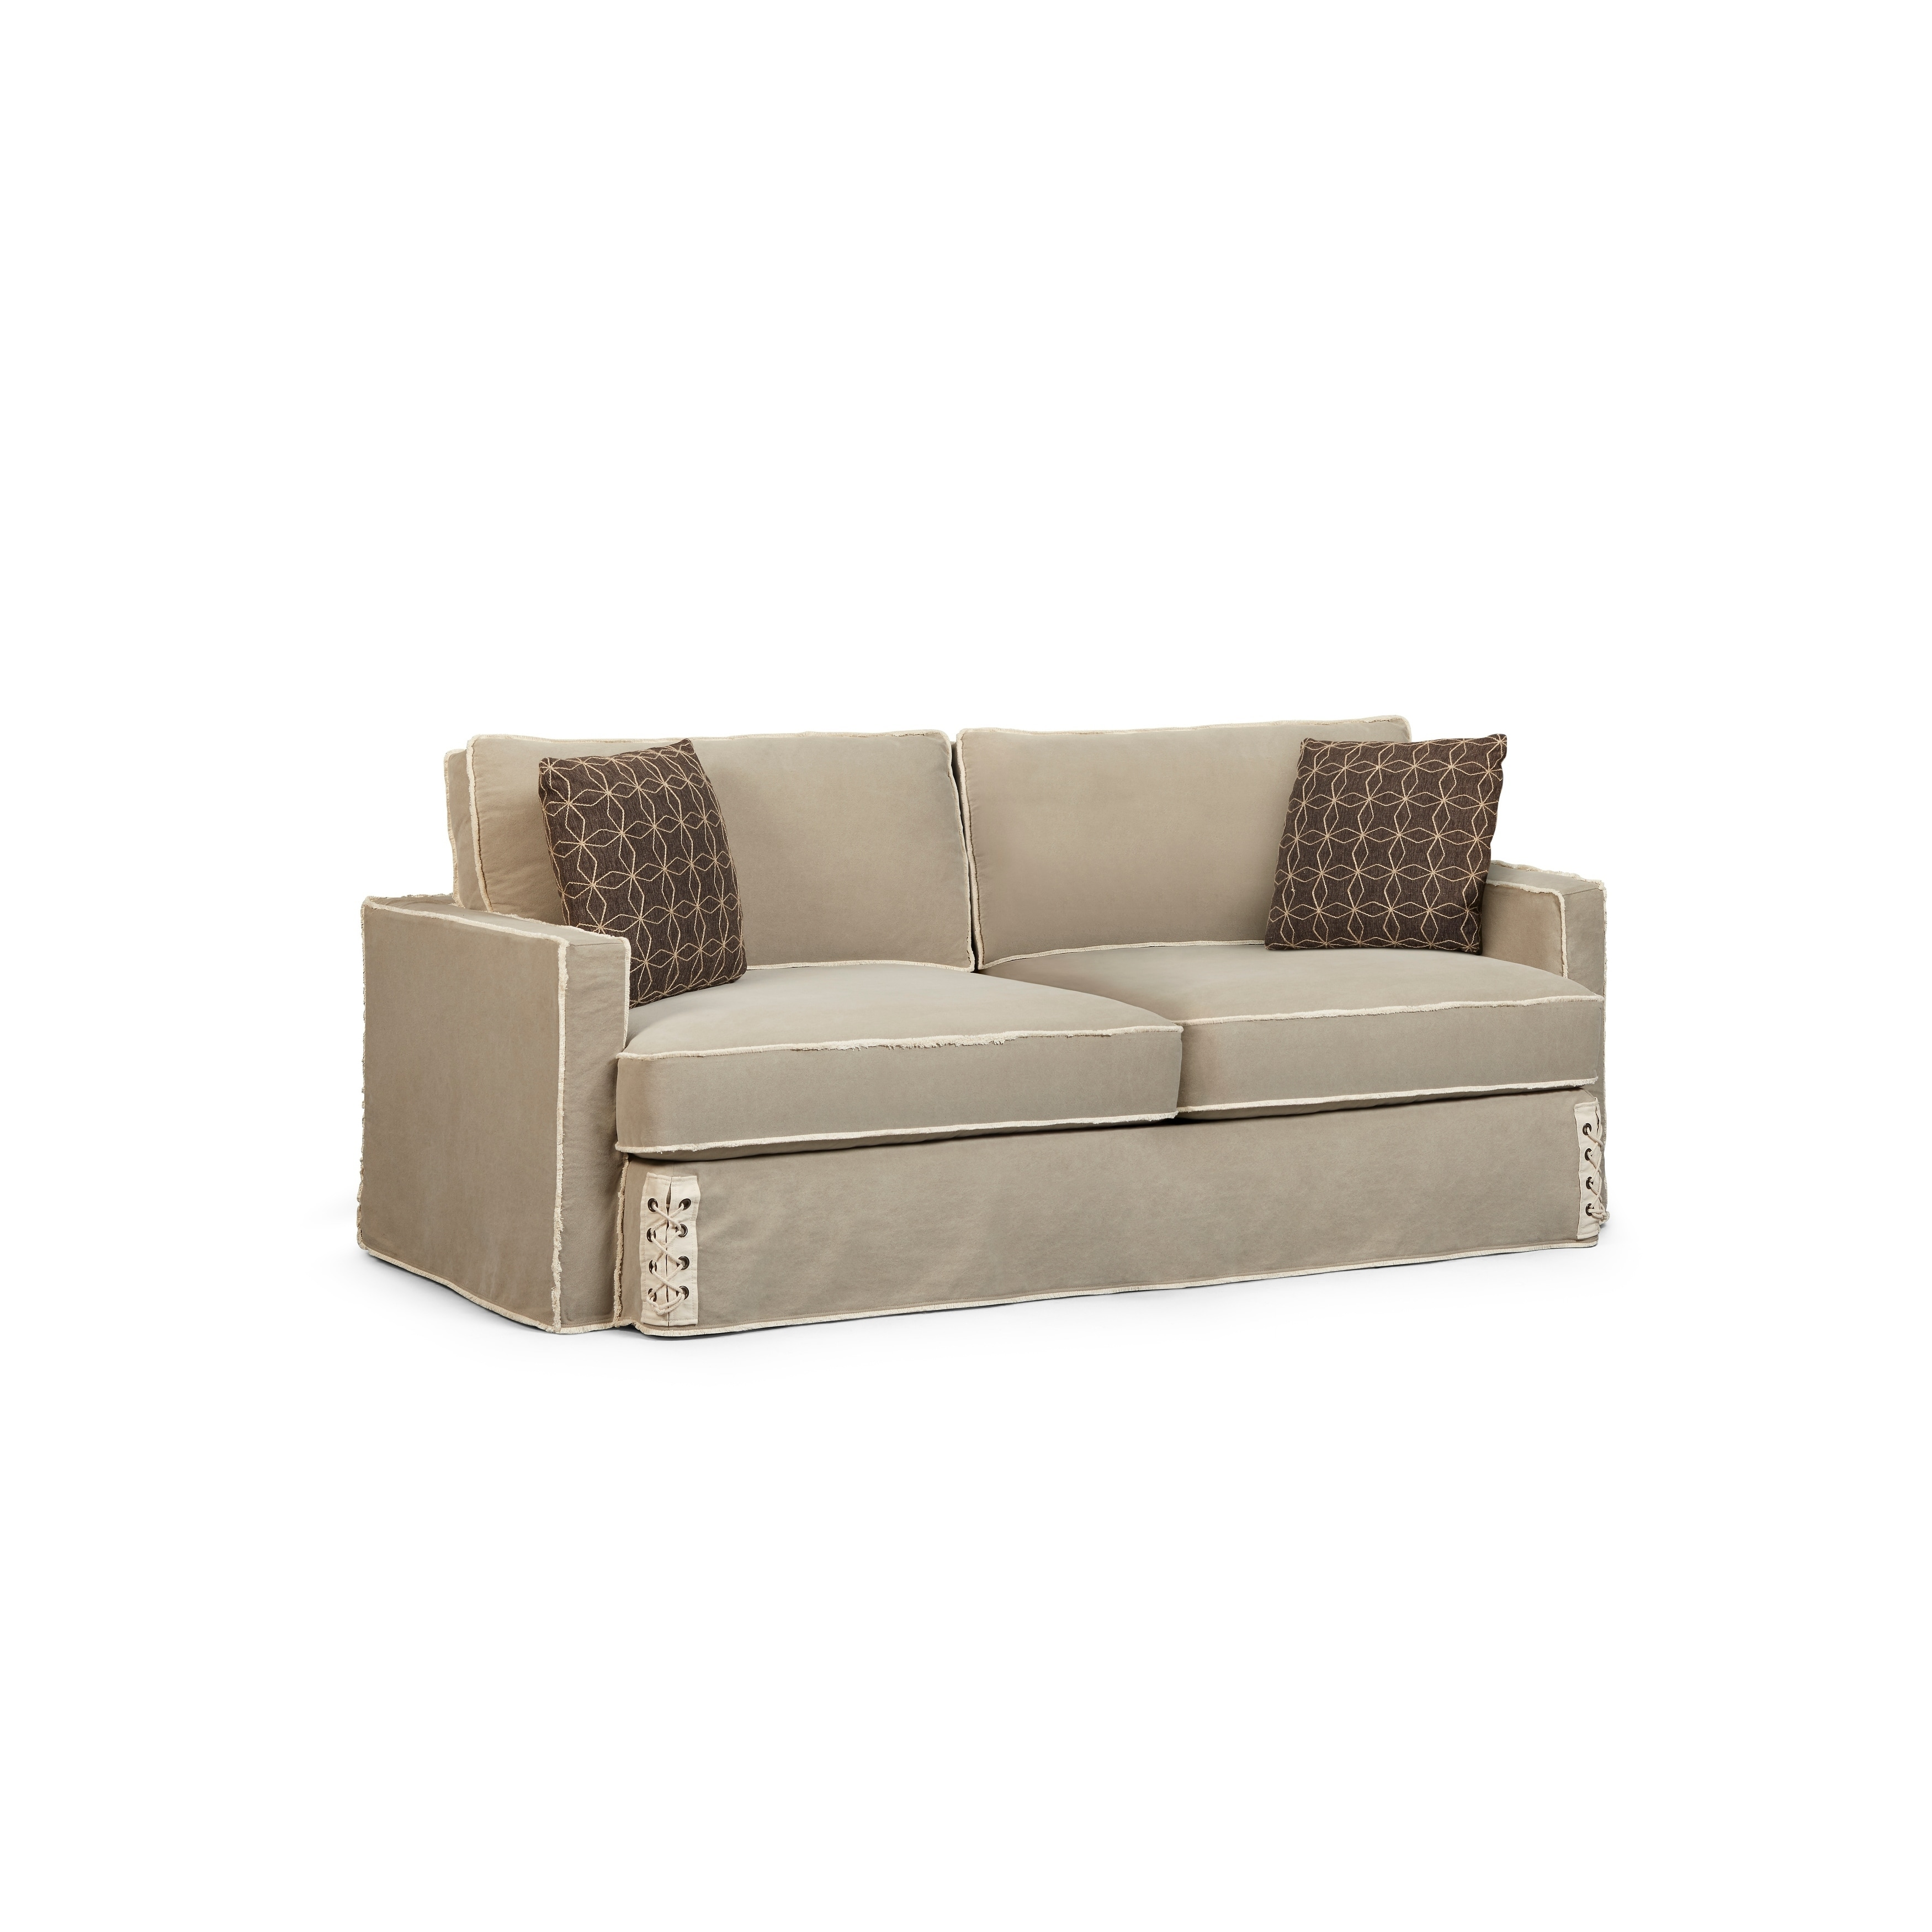 Sofas Online Valencia Buy A R T Furniture Sofas Couches Online At Overstock Our